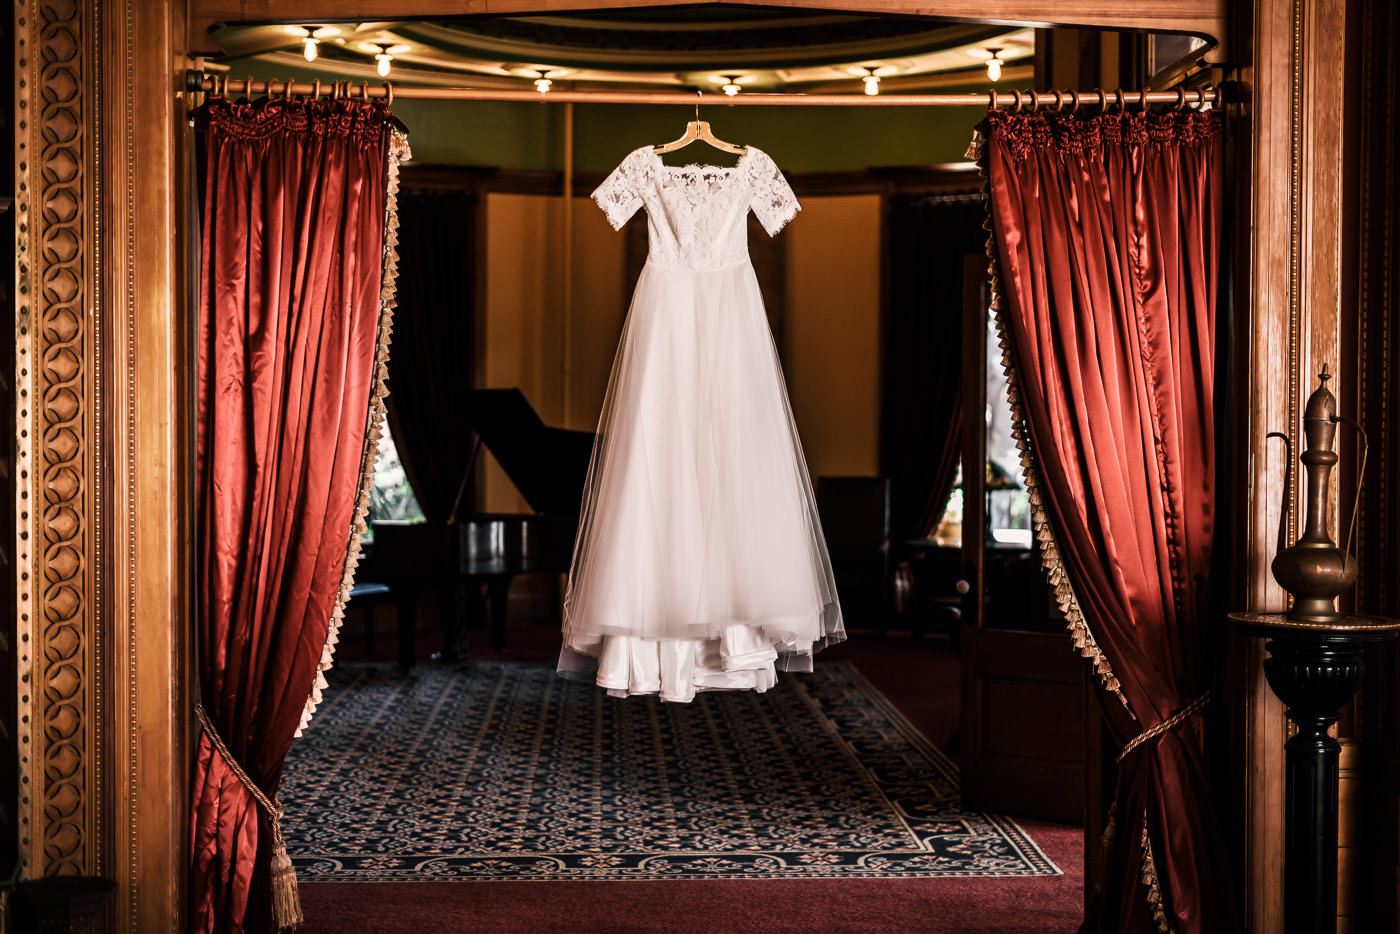 Vintage styled wedding dress hangs in the Historic lobby of the Castle Green in Pasadena California